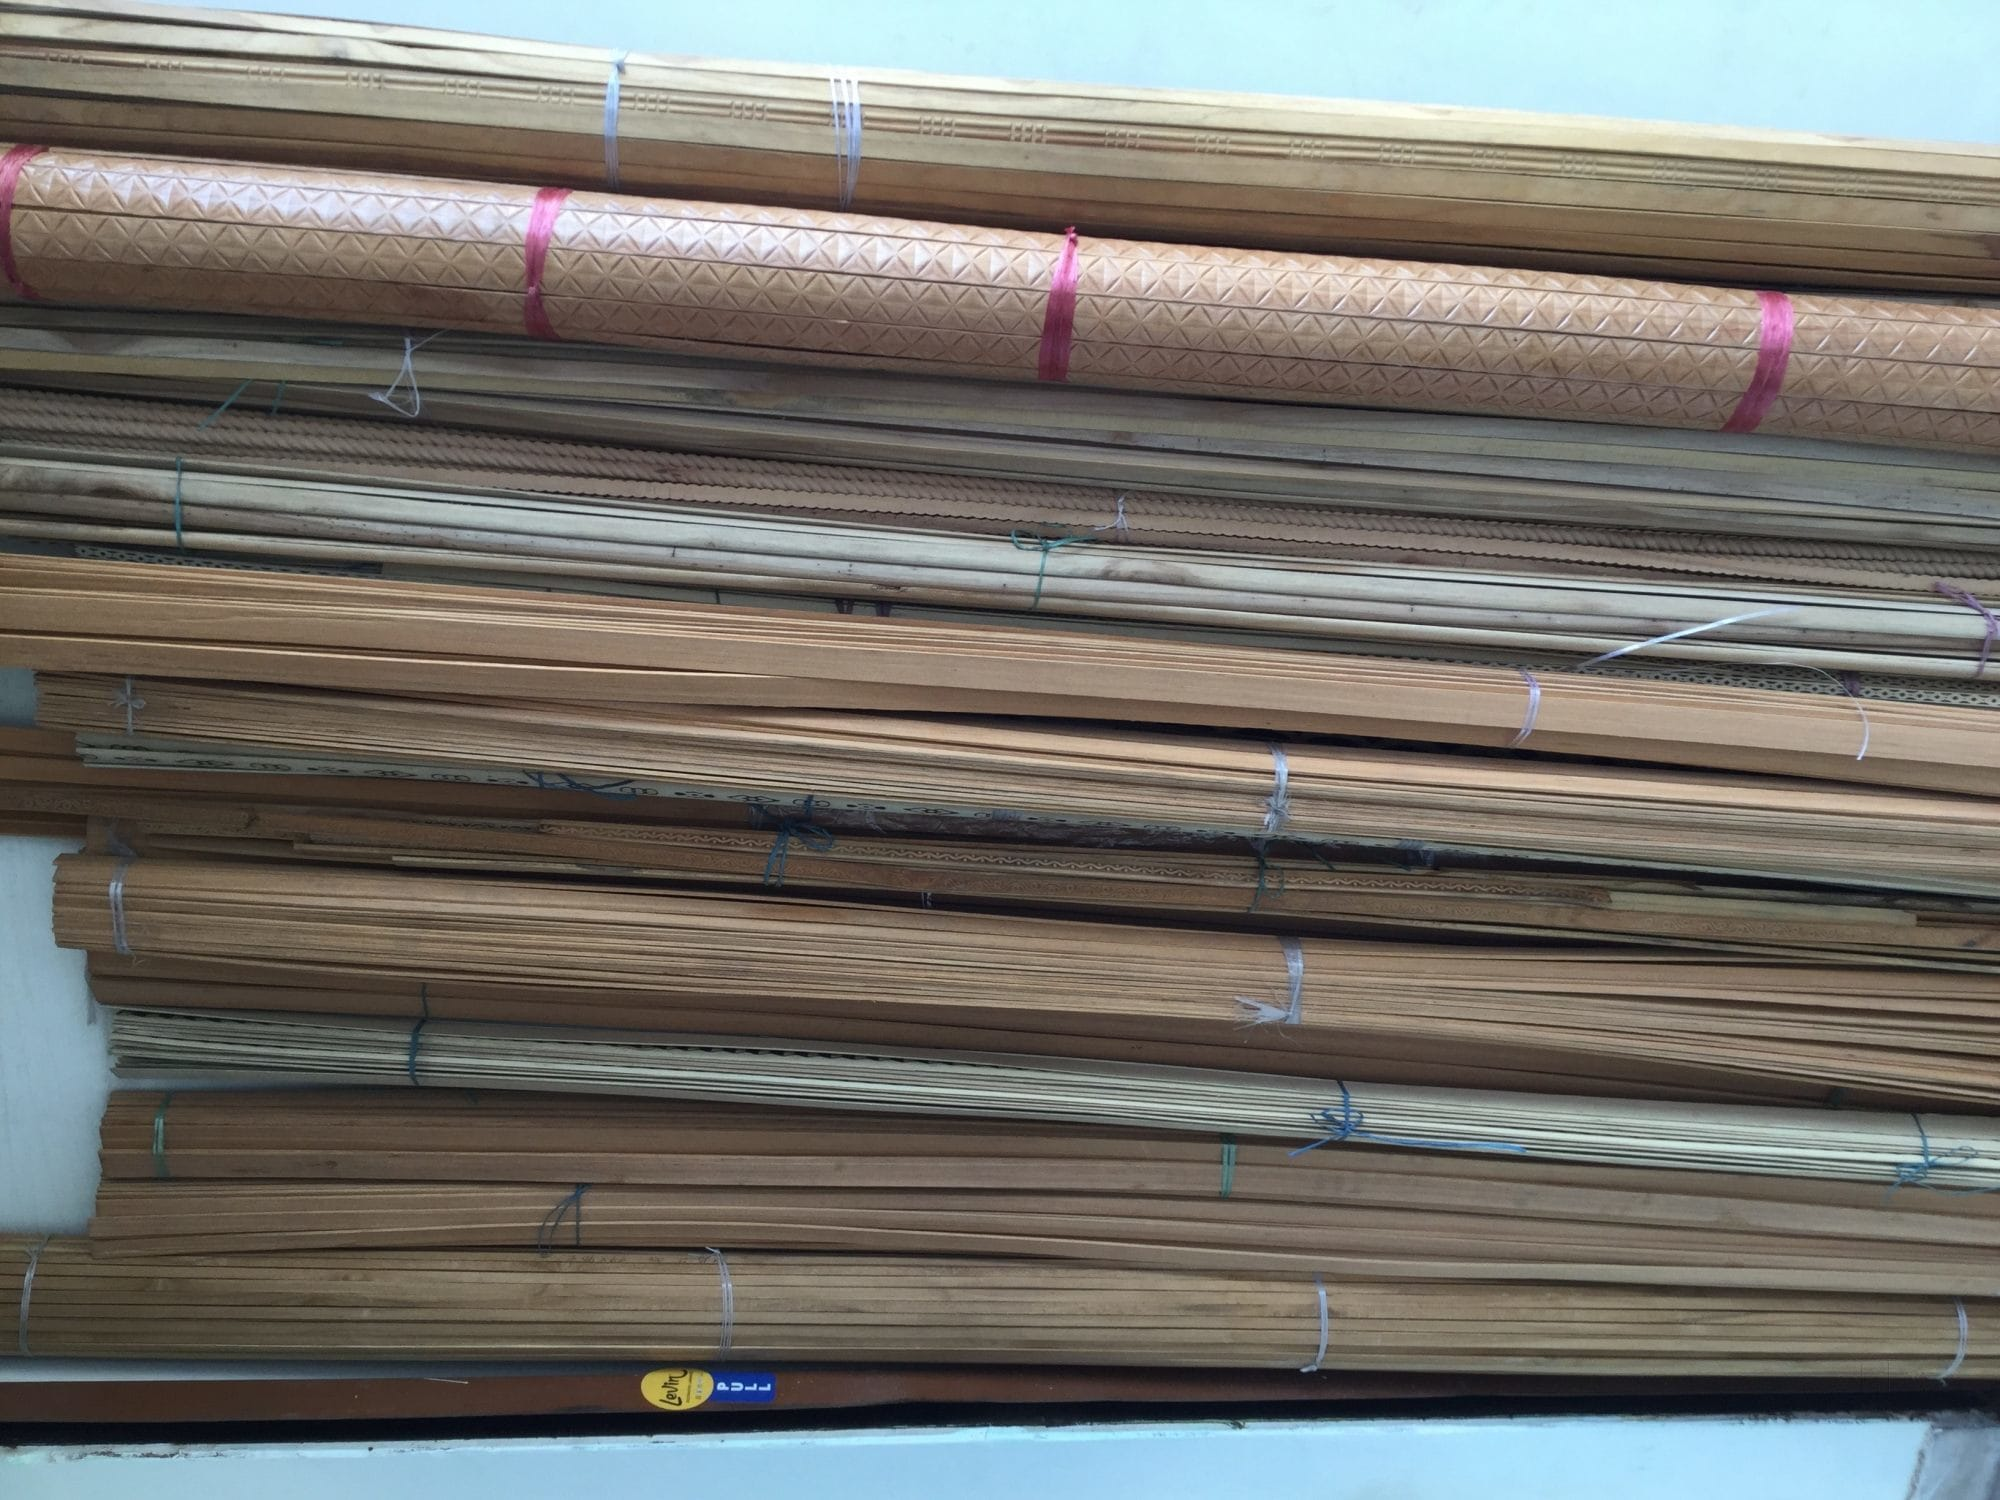 Pss Plywood Balongi Plywood Dealers in Chandigarh Justdial